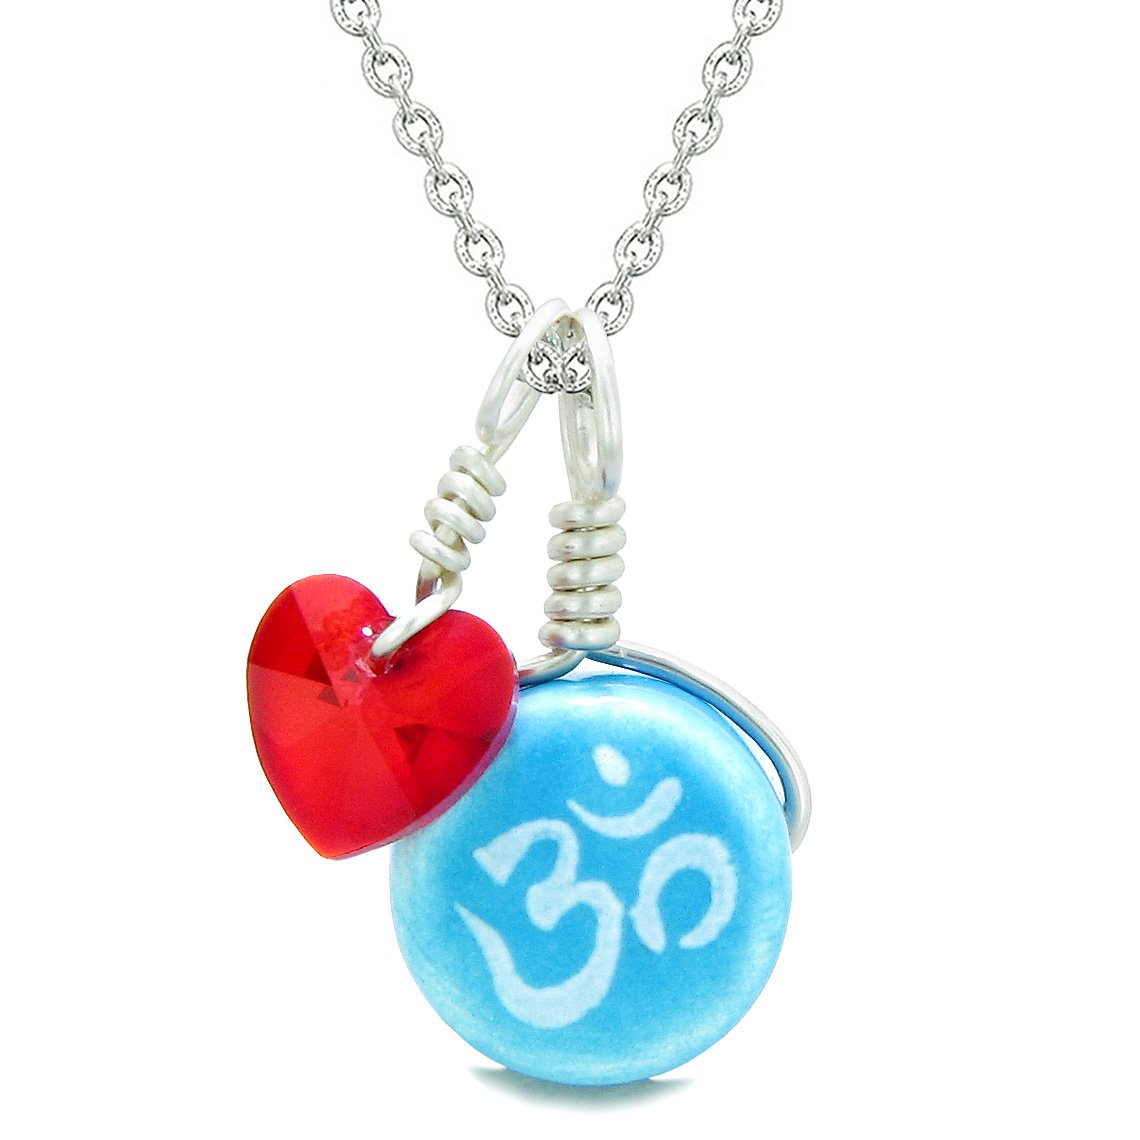 Tibetan Om Ohm Symbols Mantra Fashion Ceramic Jewelry Amulets and Talismans